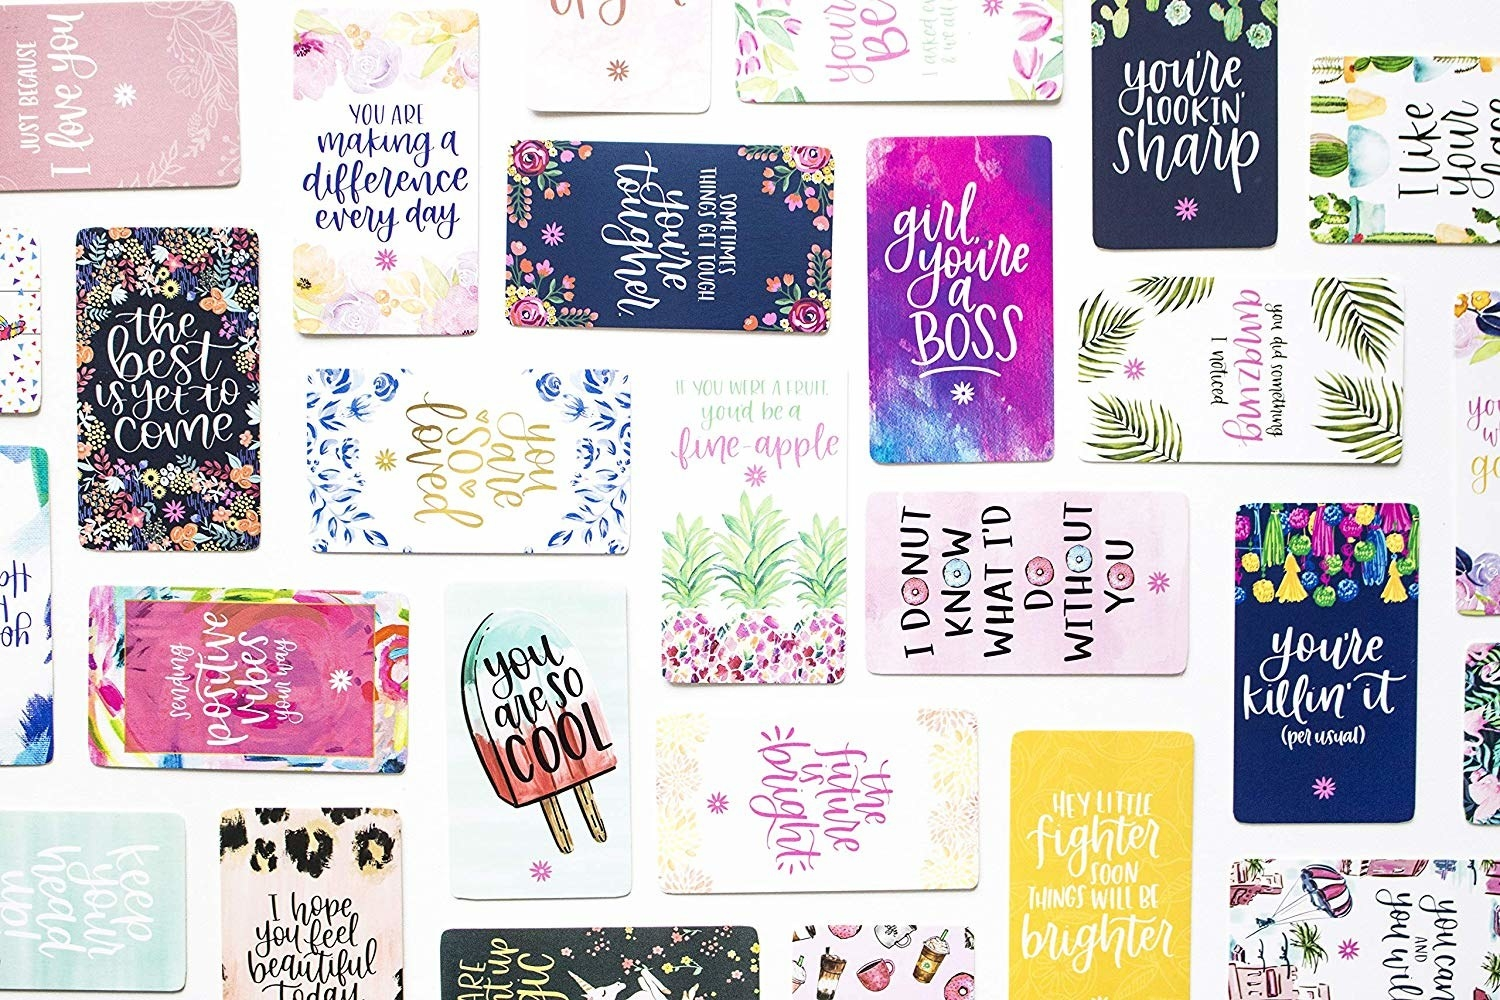 different cards with illustrations and kind messages laid out